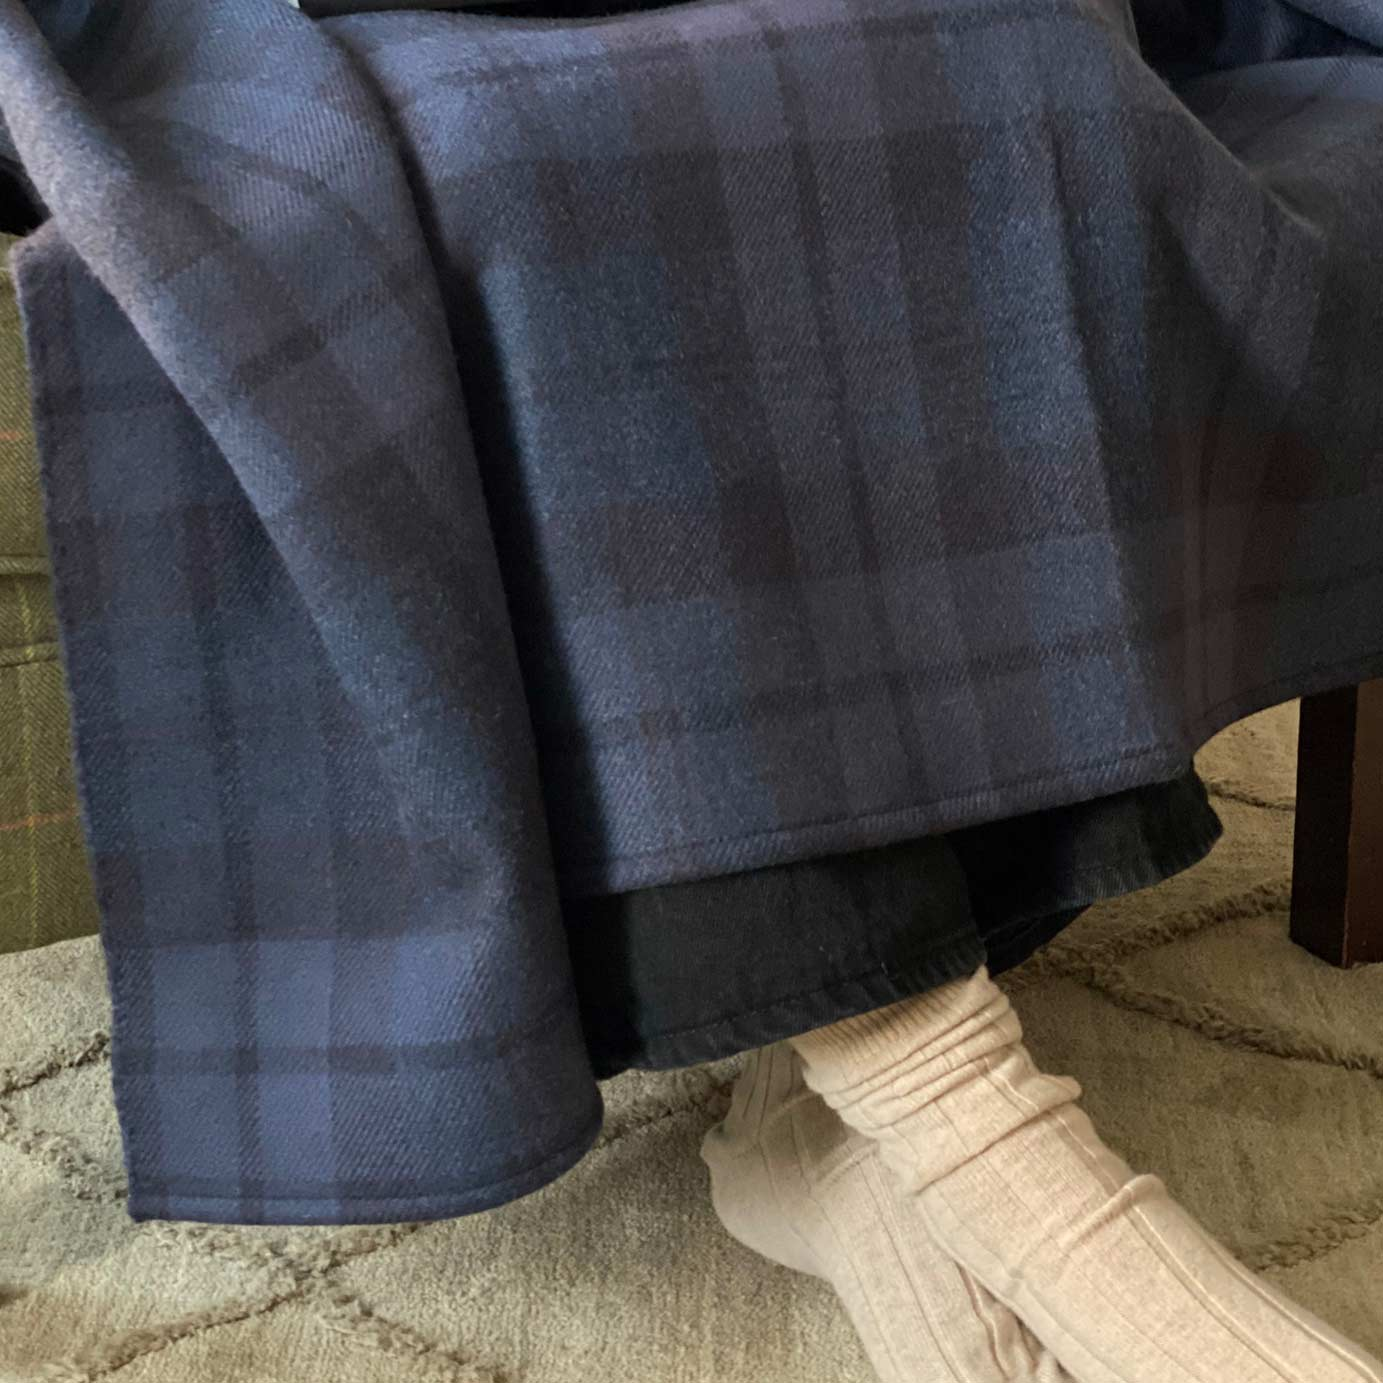 Indigo Plaid Luxury Cashmere Comfort Blanket